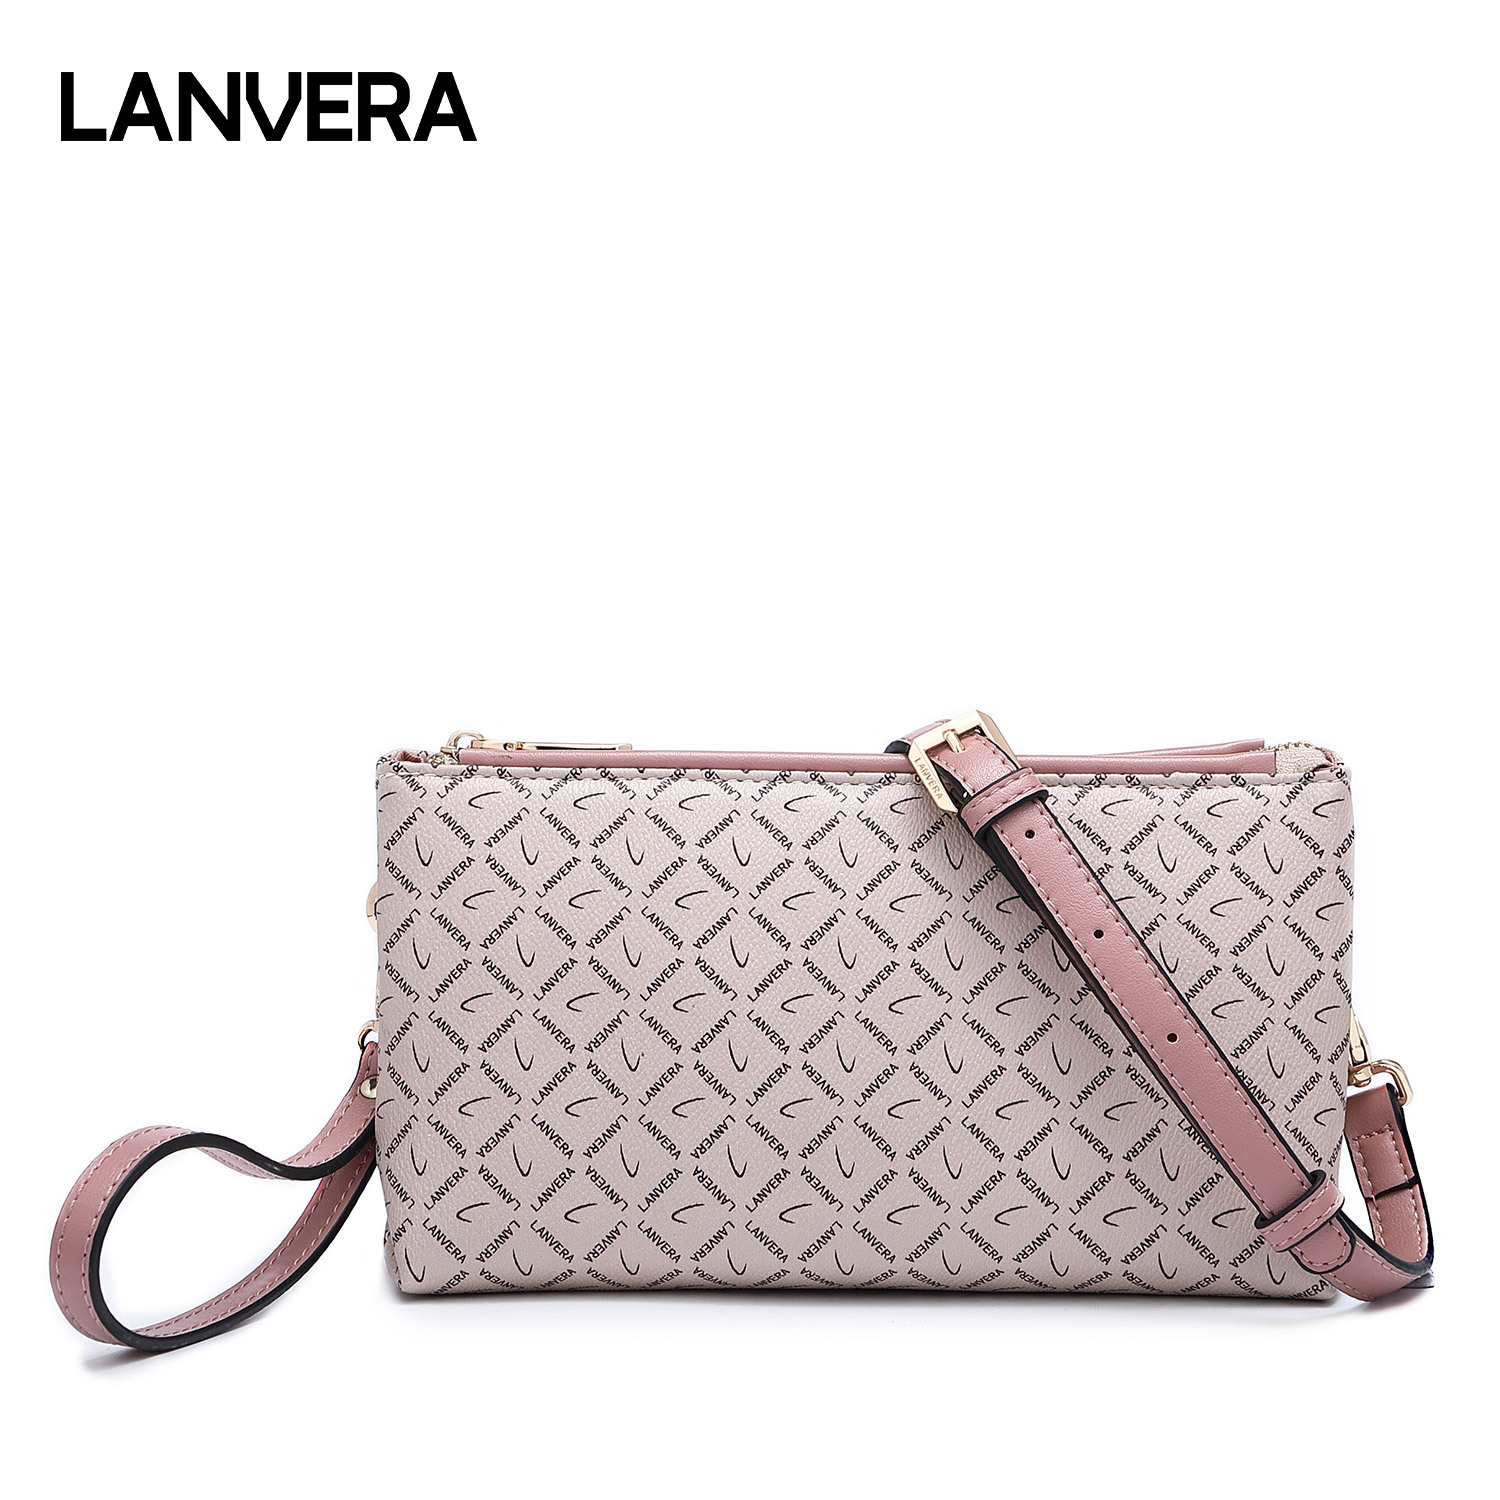 2018 Fashion Women Tote Shoulder Bags Casual Handbags Famous Brand Plaid Women Shoulder Crossbody Messenger Bag emma yao women bag leahter shoulder bags famous brand crossbody bags